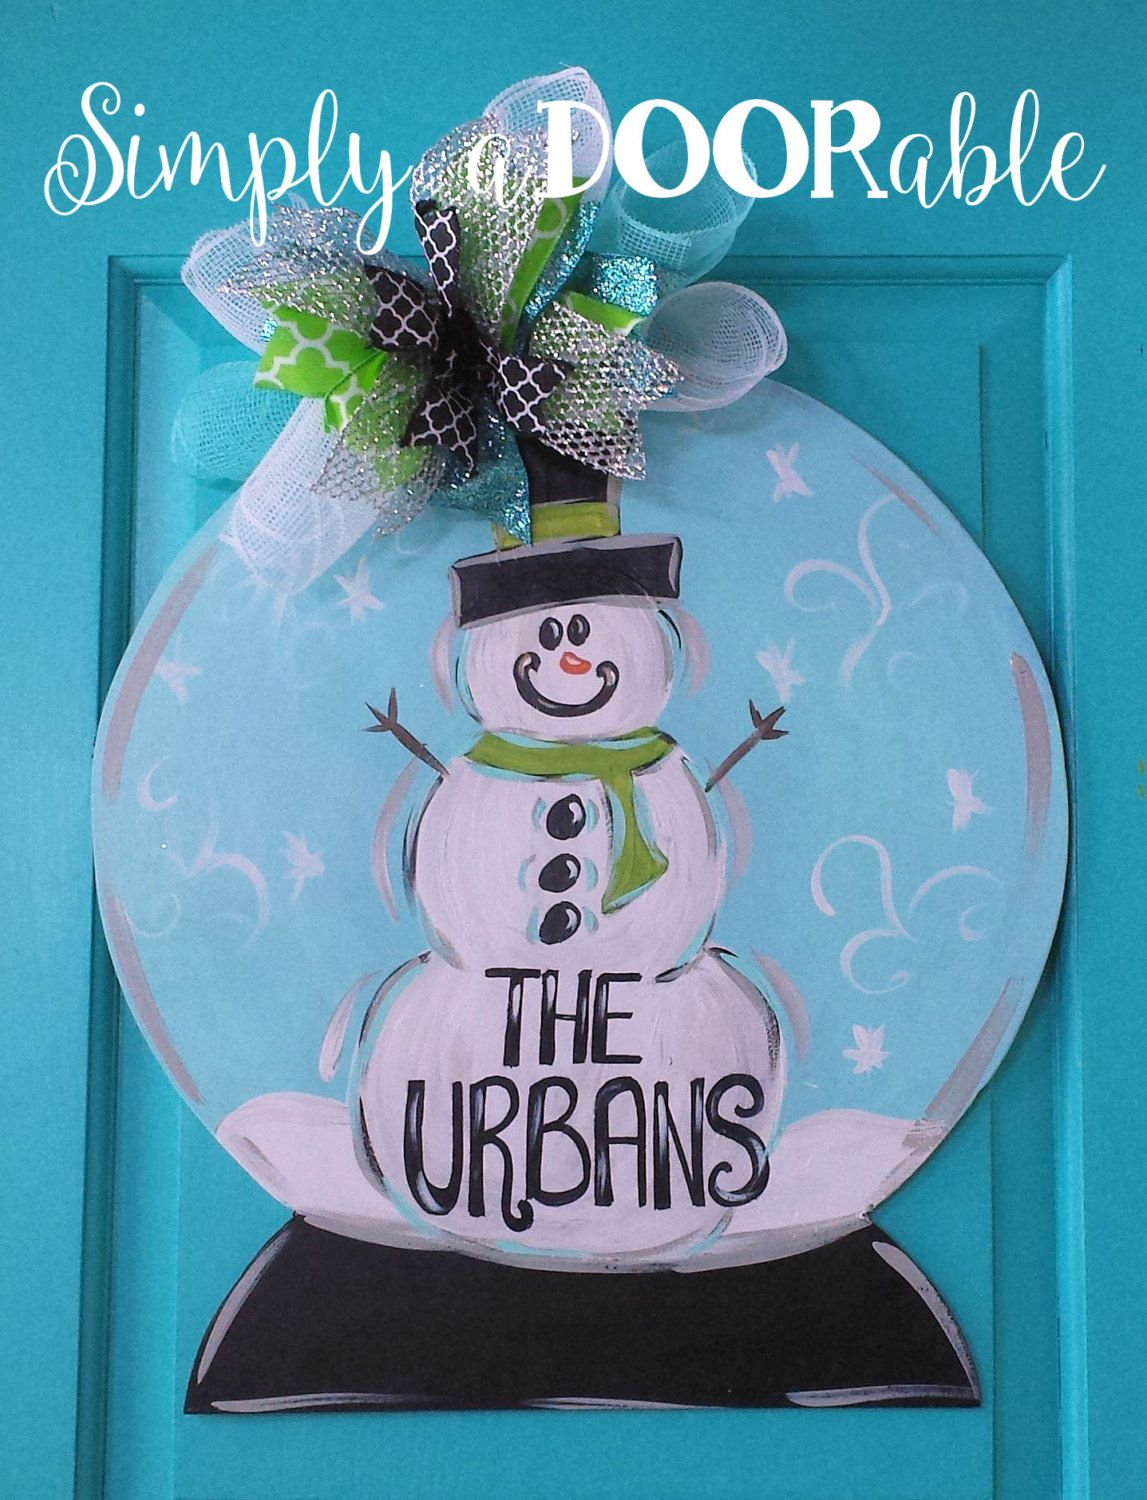 Le Meilleur Snow Globe Wood Door Hanger By Simplyadoorable Winter Ce Mois Ci